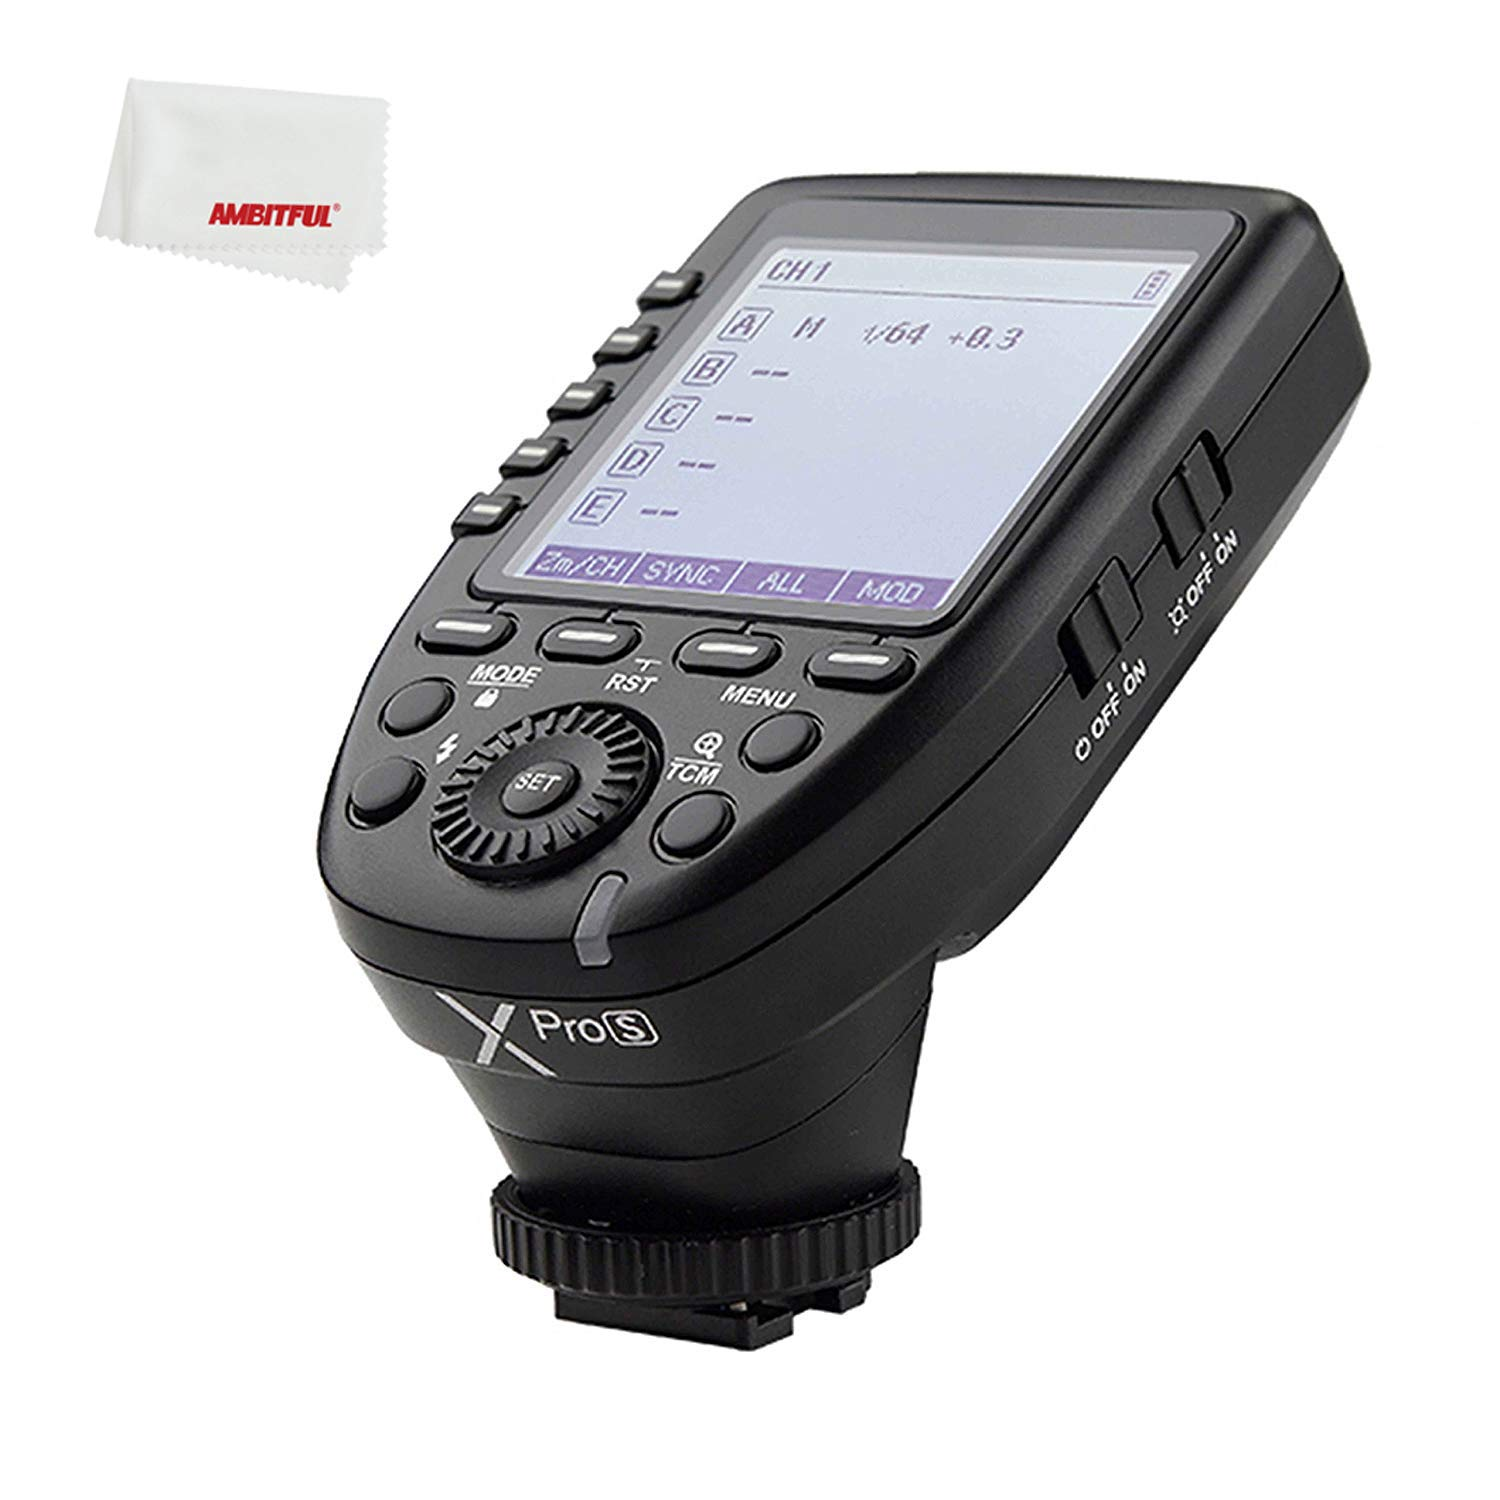 Godox xpro Xpro-S XPros TTL Wireless Flash Trigger 1/8000s 11 Customizable Functions Compatible for Sony Camera Godox TT685S TT350S V860II-S V350S by Godox